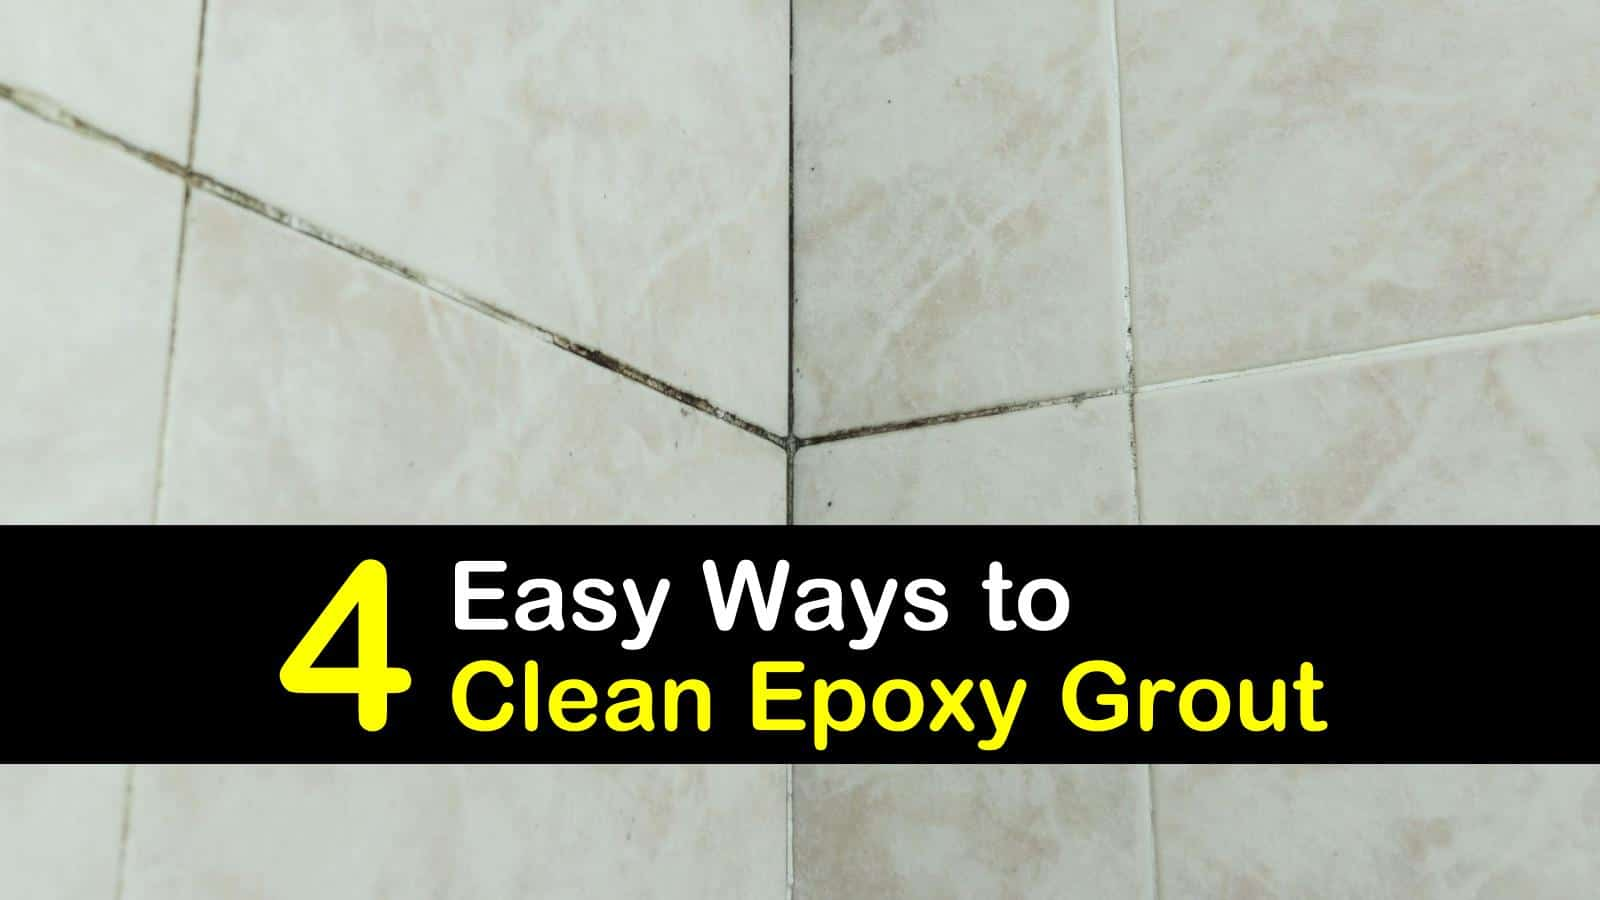 4 Easy Ways To Clean Epoxy Grout